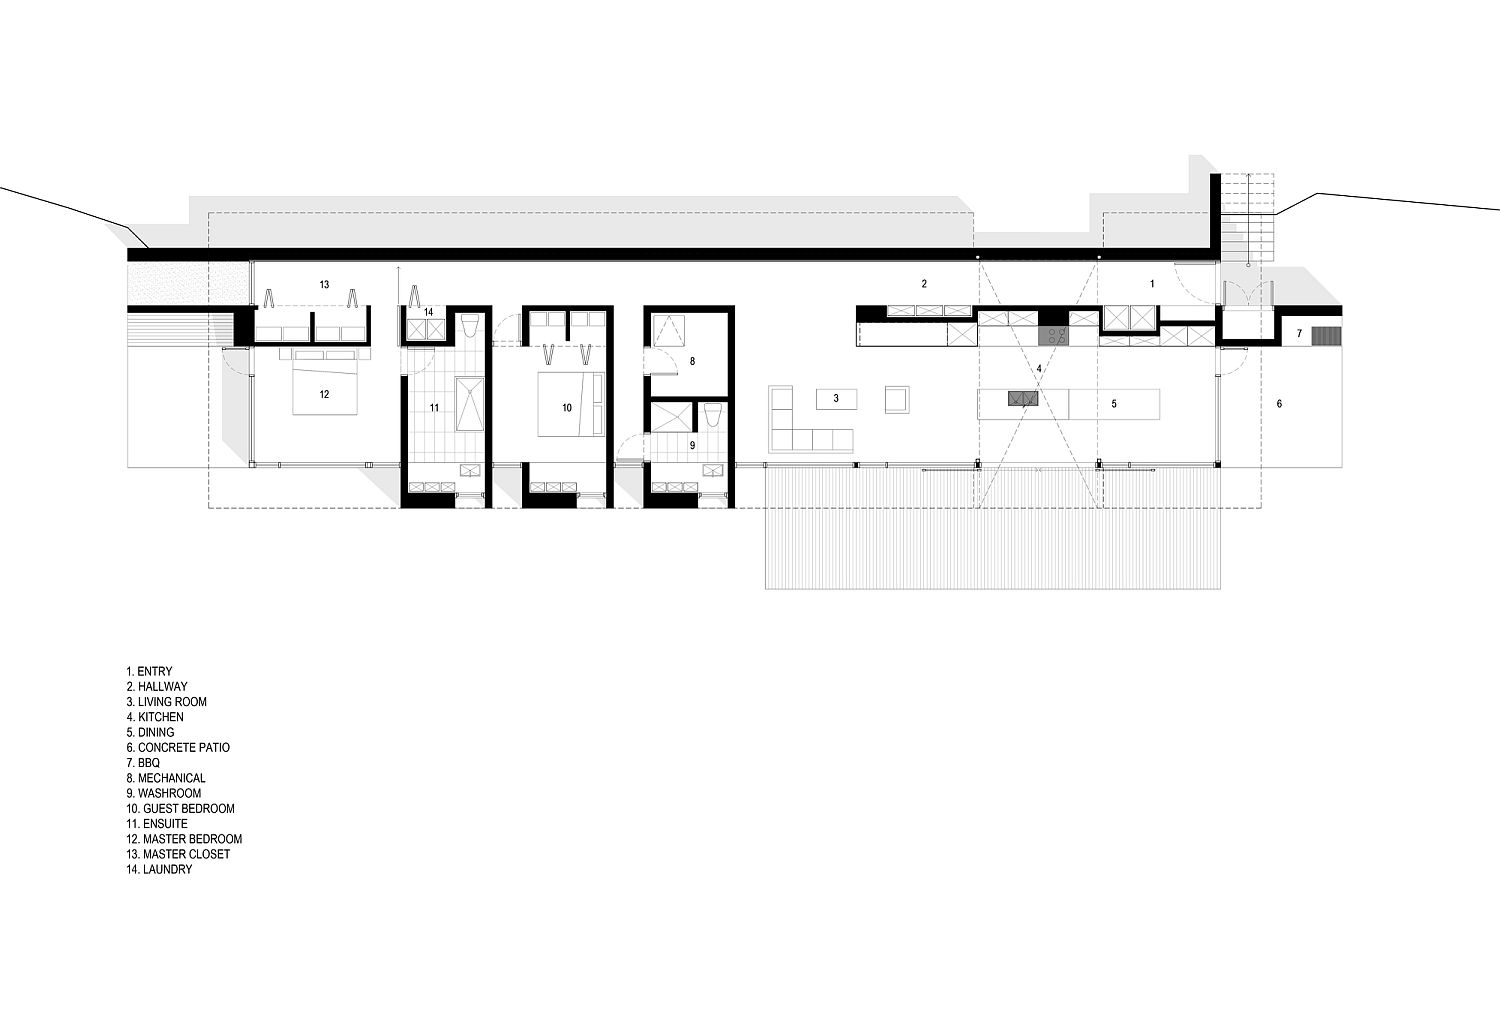 Floor plan of the coastal home in Inverness